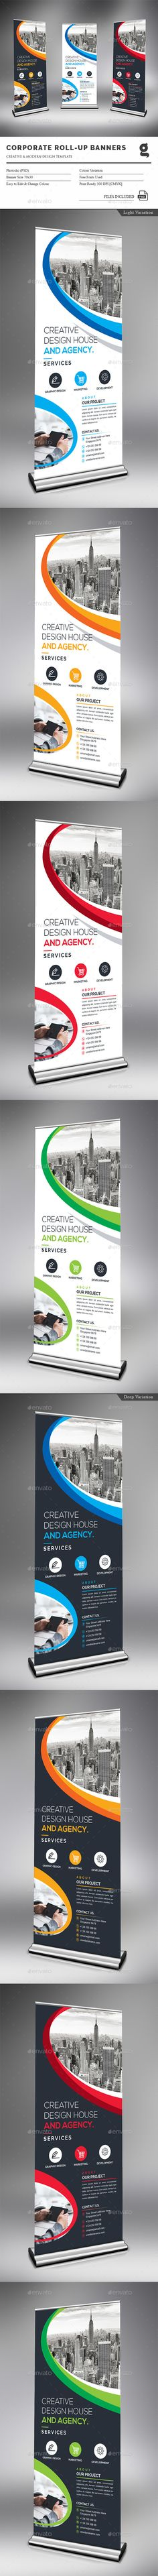 Corporate Rollup Banner by generousart File Information: Easy Customizable and EditableSize with bleedCMYK ColorDesign in 300 DPI ResolutionPrint Ready Fo Signage Design, Brochure Design, Banner Design, Standee Design, Invoice Template, Banner Template, Rollup Design, Rollup Banner, Retail Signage